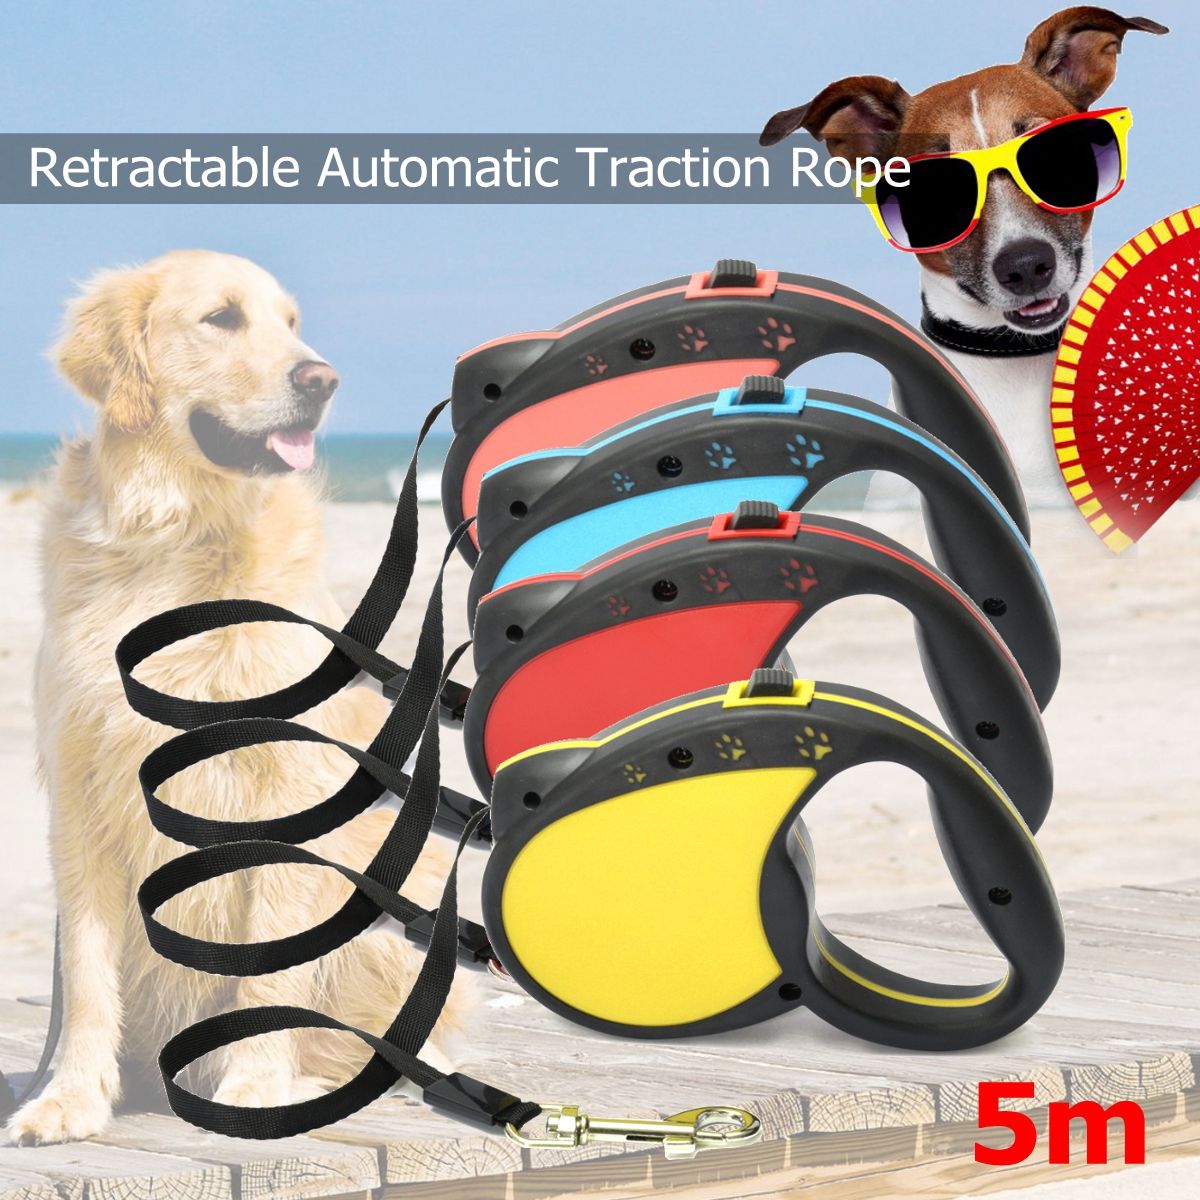 1Pcs 5M/16FT Retractable Dog Leash leashe Extendable Pet Dog Walking Training Leash Nylon Automatic Lead